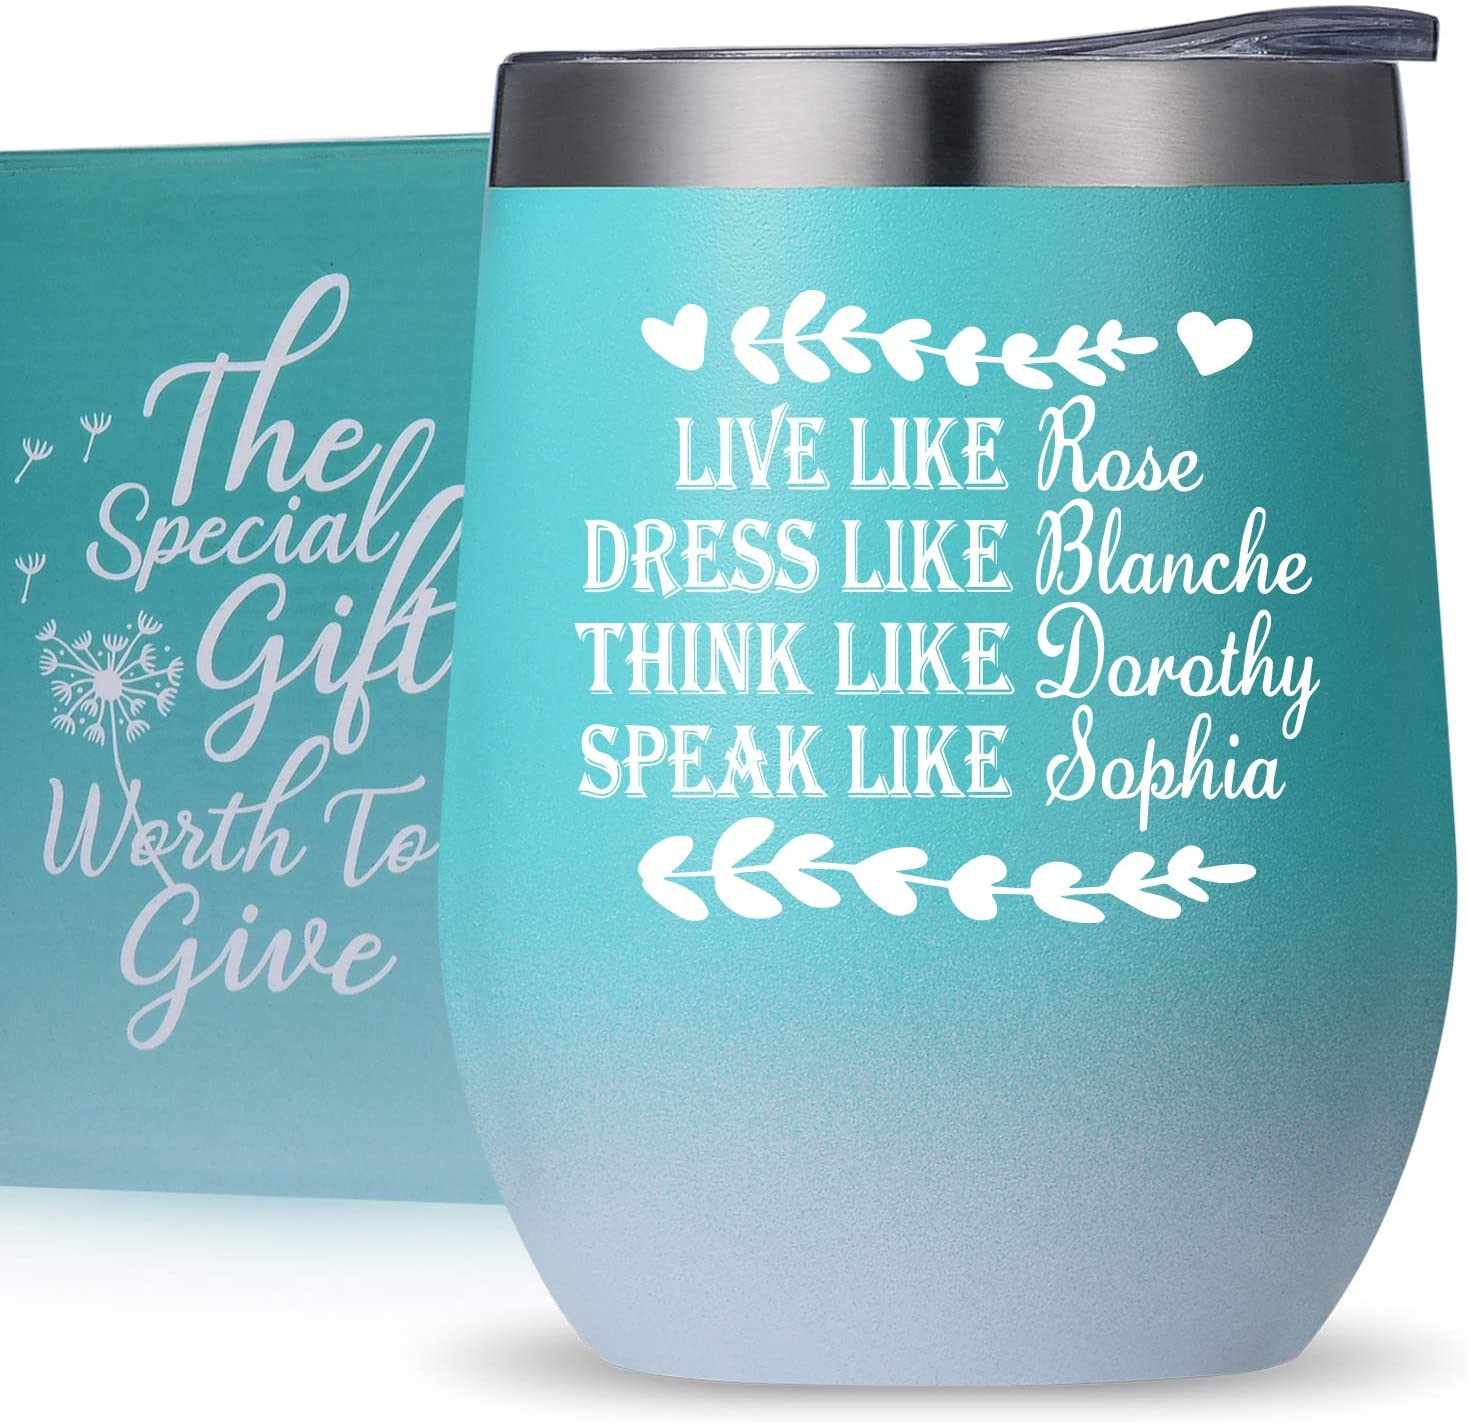 Birthday Gifts,Thank You Gifts,Graduation Gifts for Women,Best Friends,Sisters,BFF,Besties,Long Distance Friendship Gifts,Live Like Rose Dress Like Blanche, Wine Tumbler Mug Cup